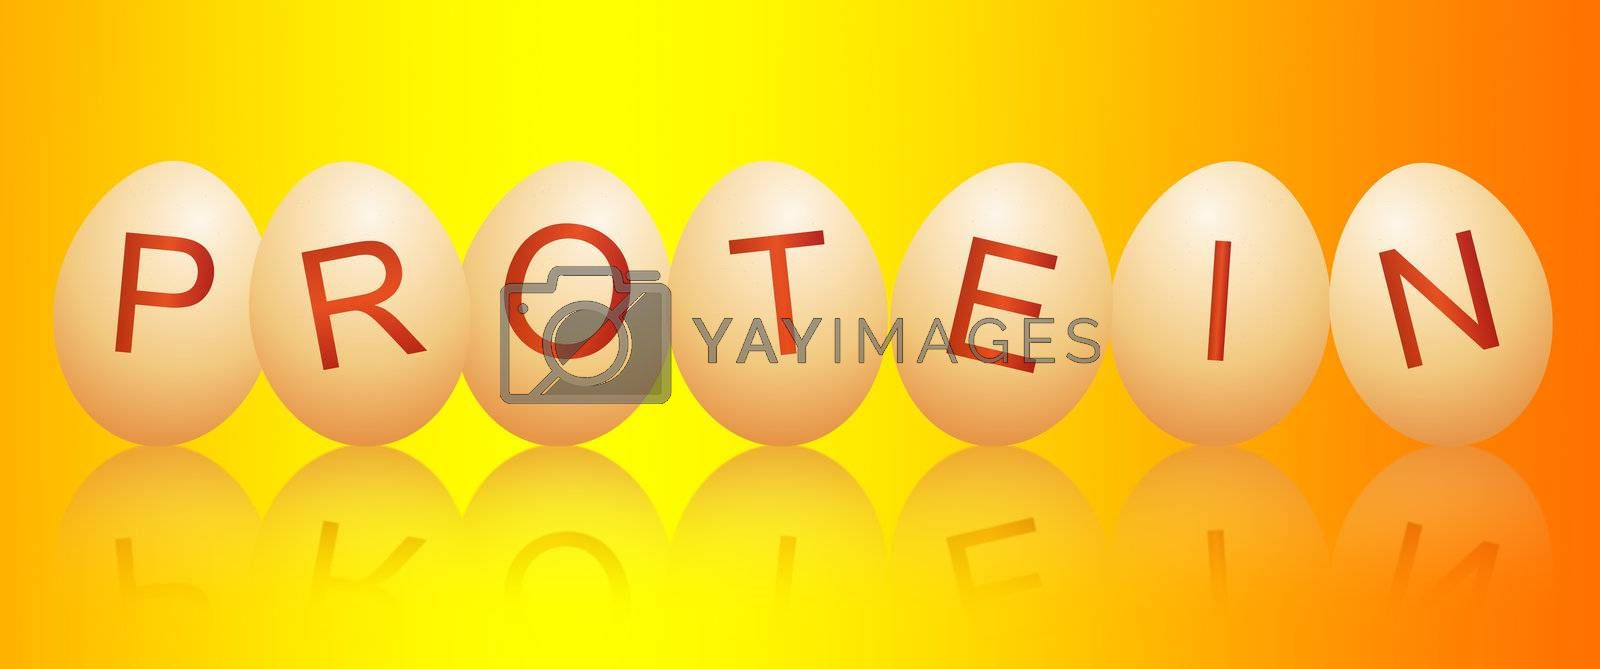 Illustration depicting a row of chicken eggs with letters spelling the word PROTEIN arranged over vivid yellow and orange and reflecting into the foreground.